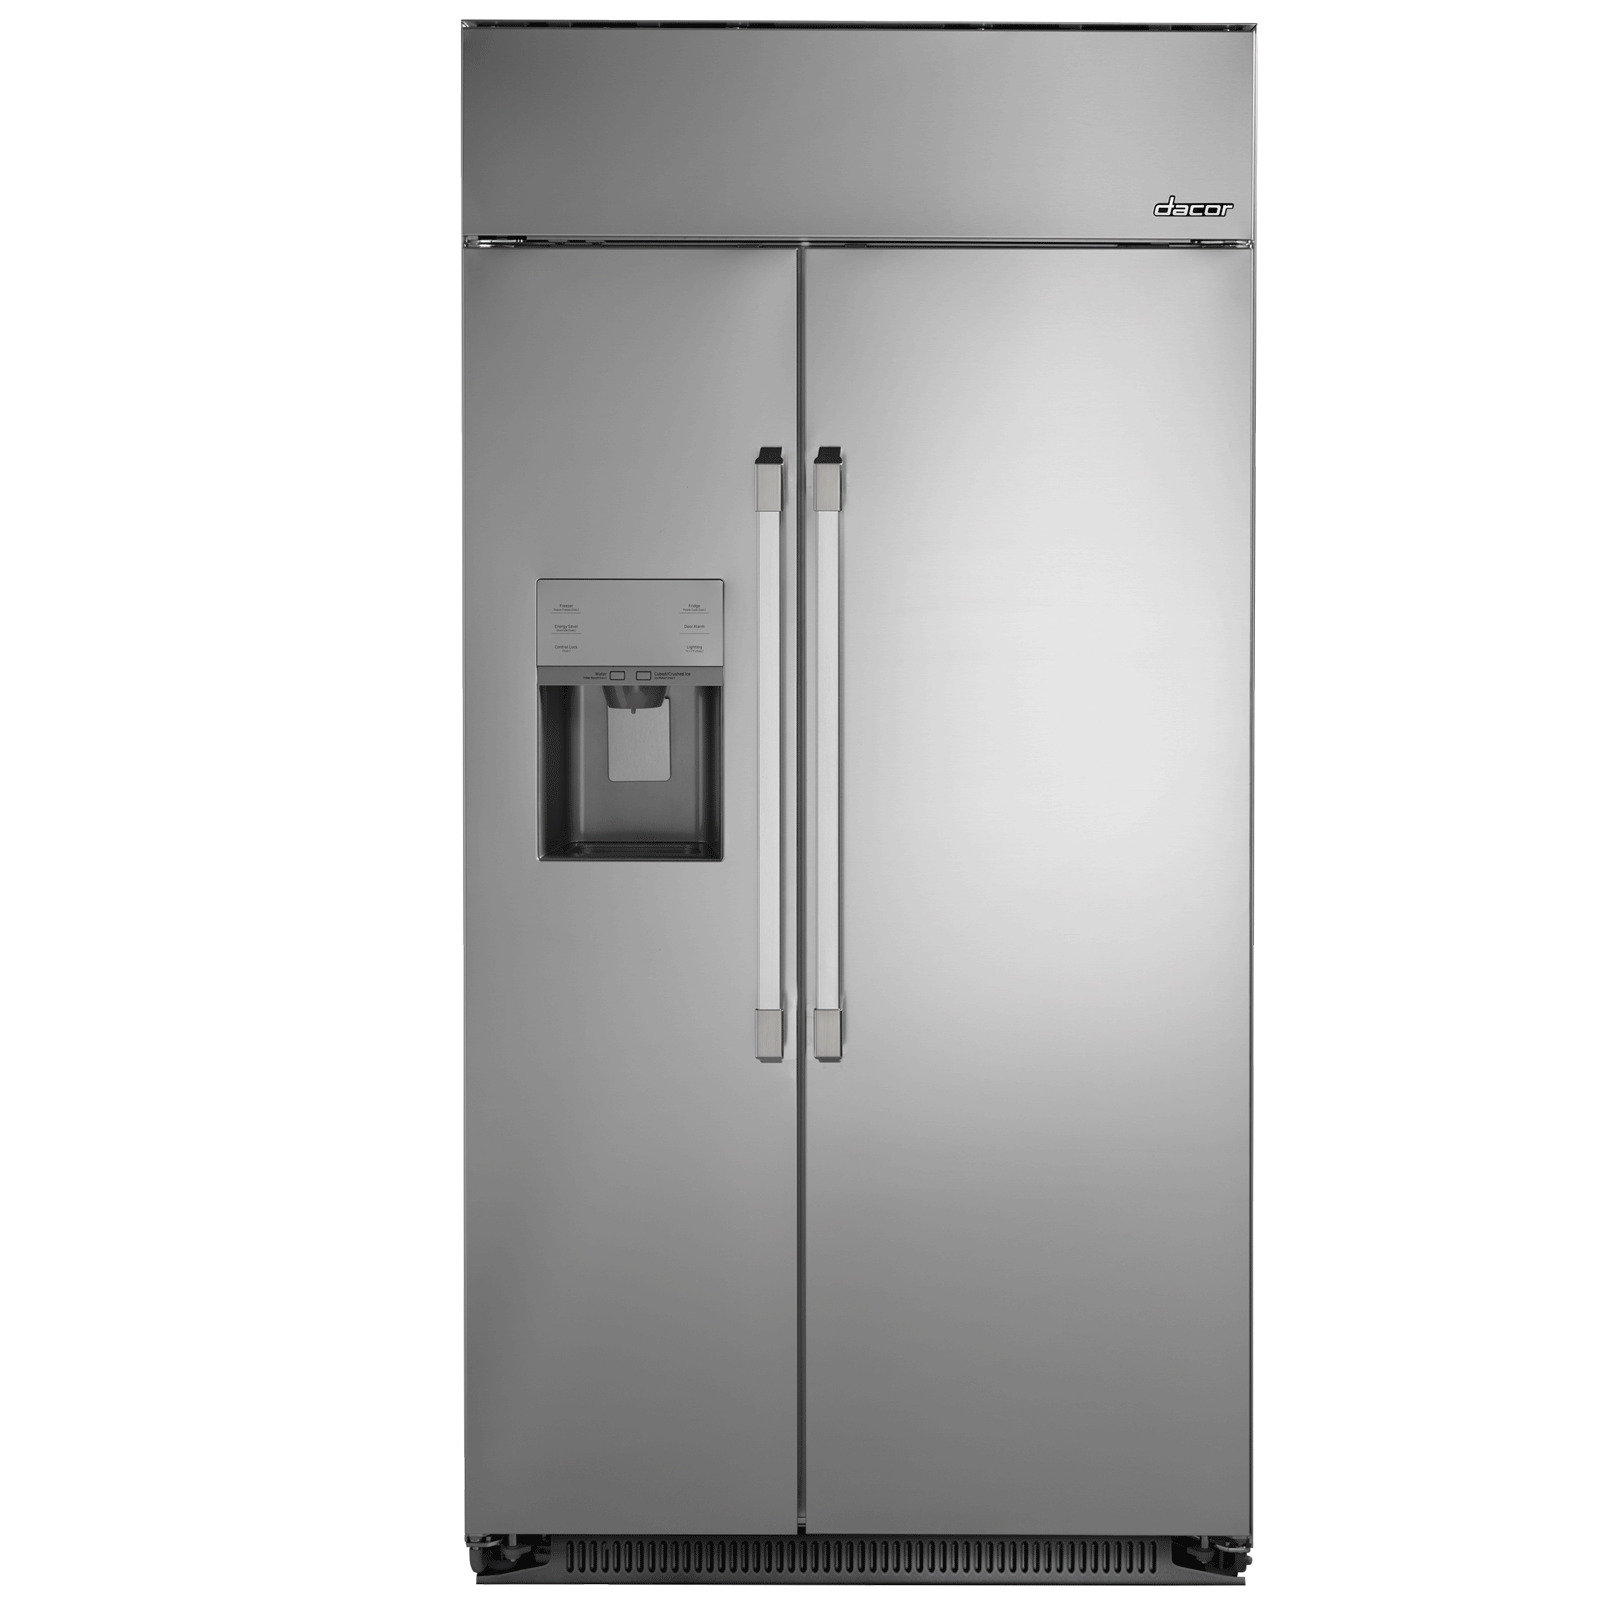 Dacor dyf42sbiws 42 built in counter depth side by side for Dacor 42 refrigerator